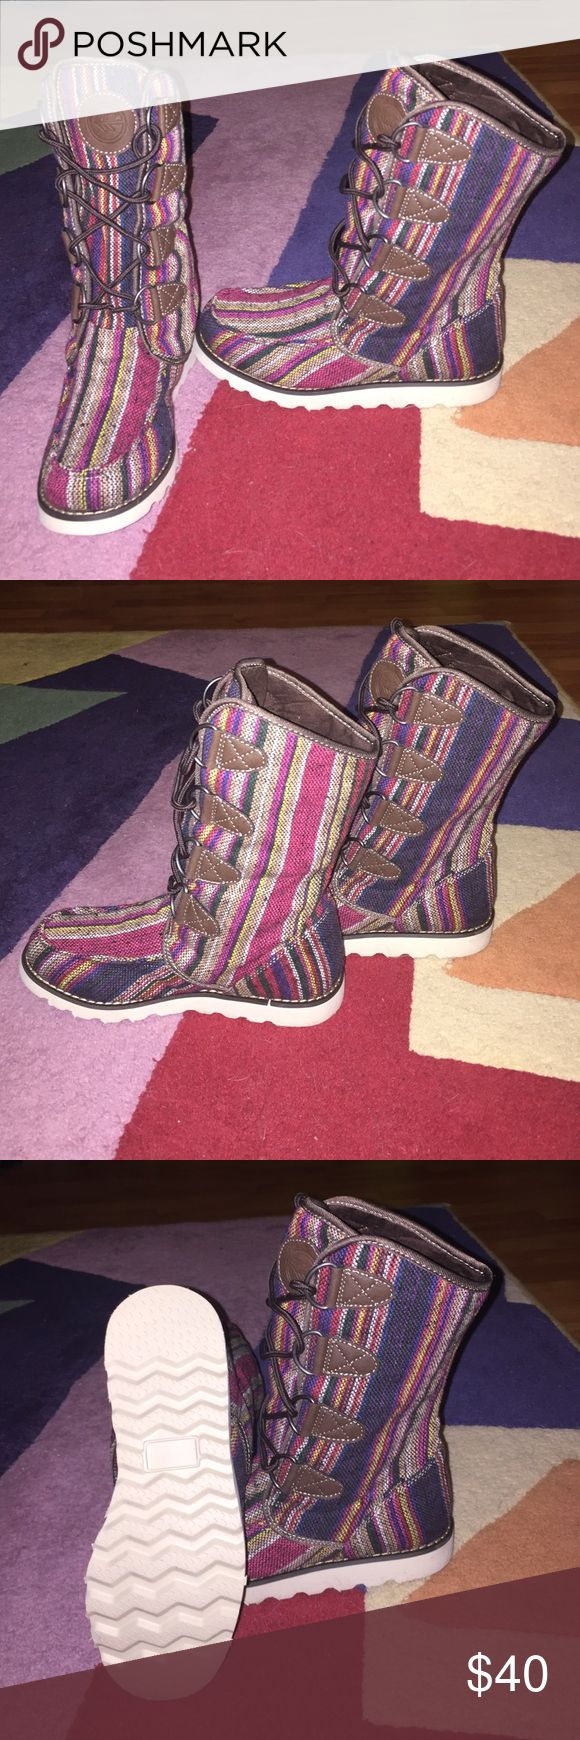 Multi-color Hi-Tec lace up winter boots Never worn! I have them in another color and they are super comfortable. Great with leggings! The thinsulate lining keeps your feet nice and dry! Hi-Tec Shoes Winter & Rain Boots